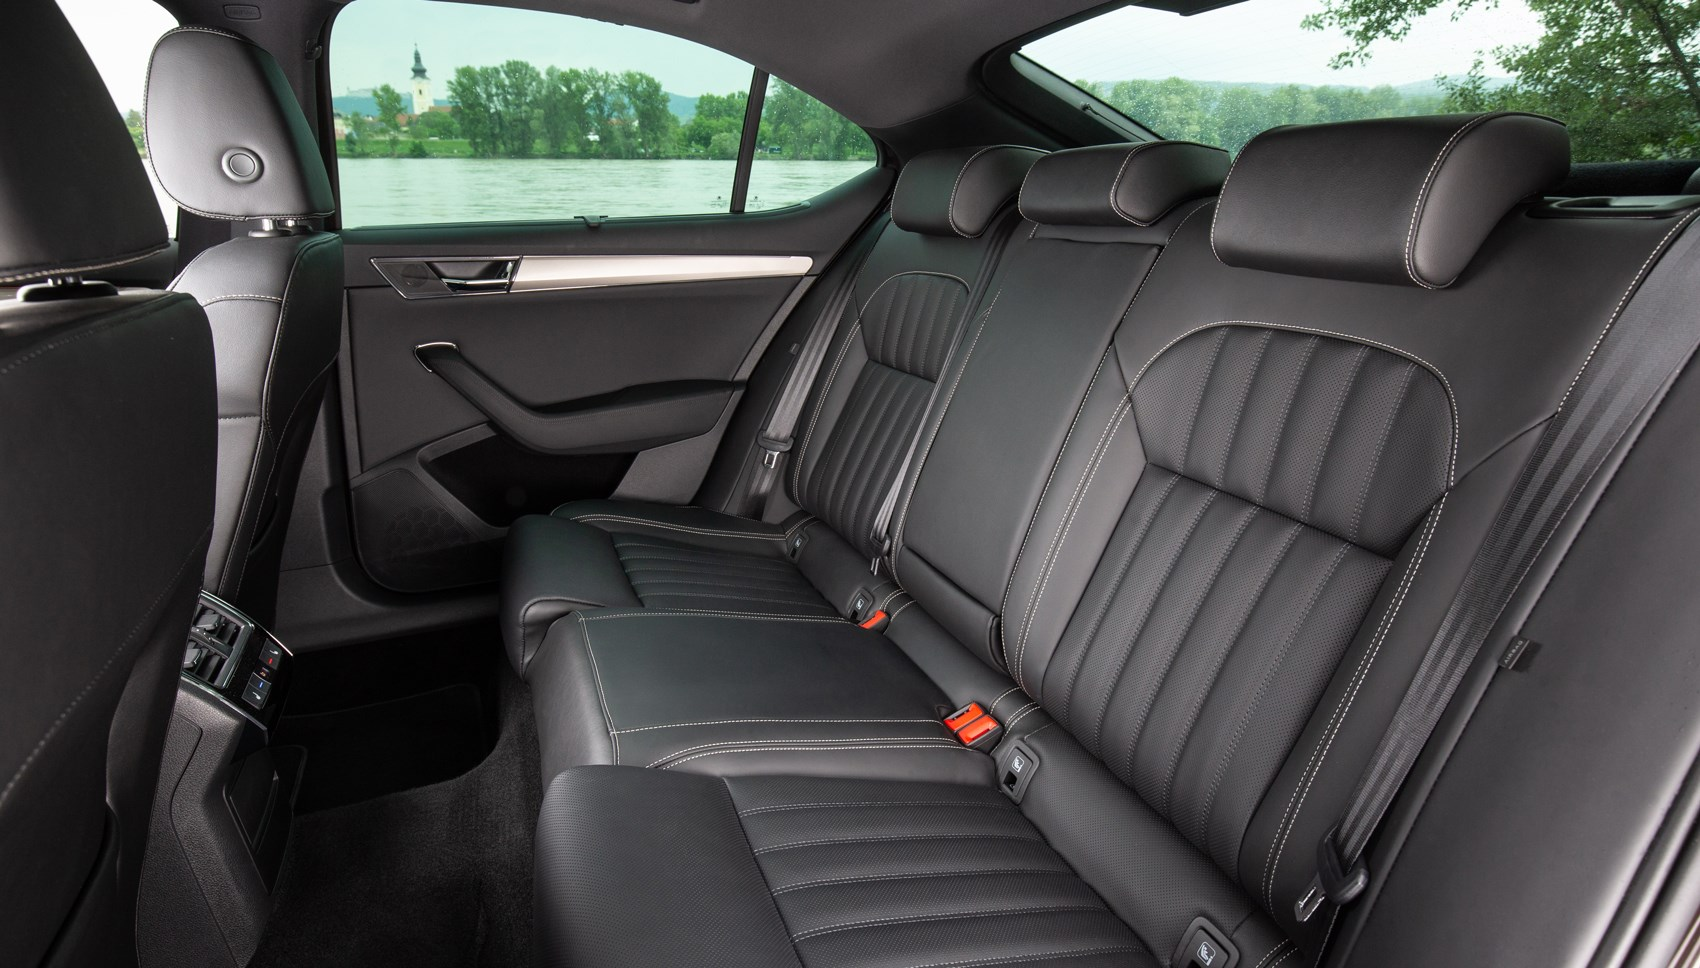 Superb rear seats